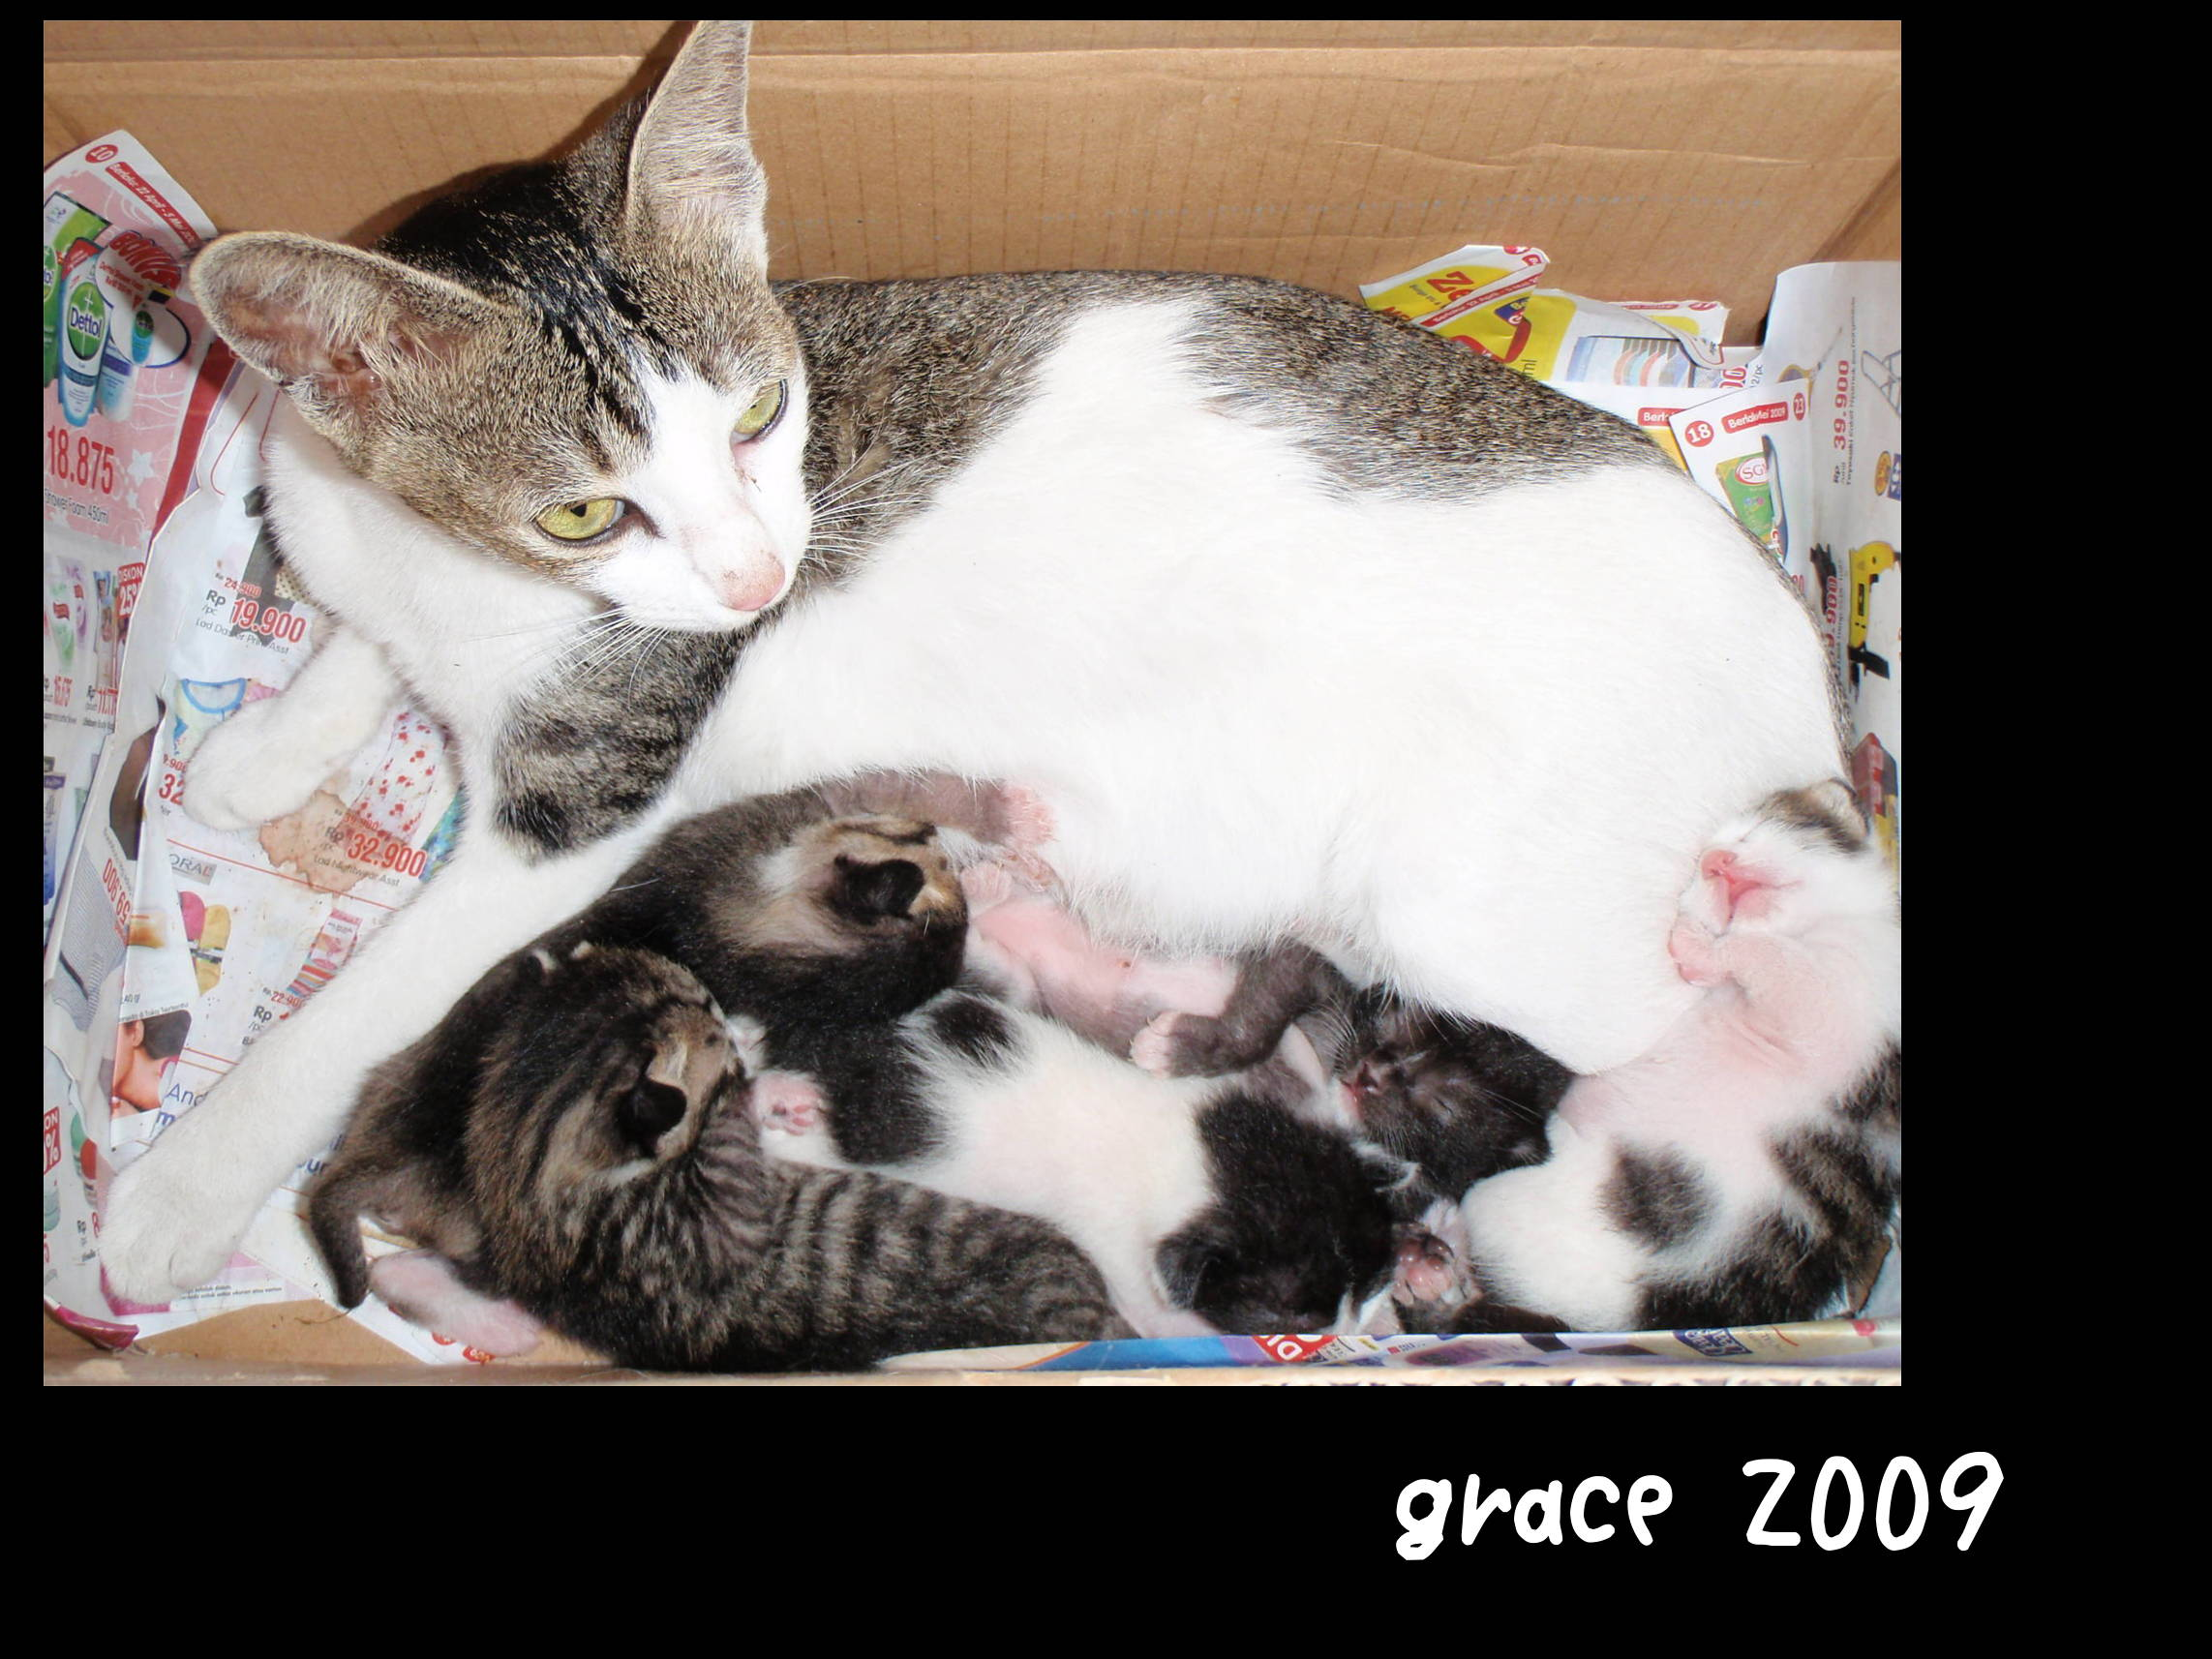 Amazing Grace and her kittens